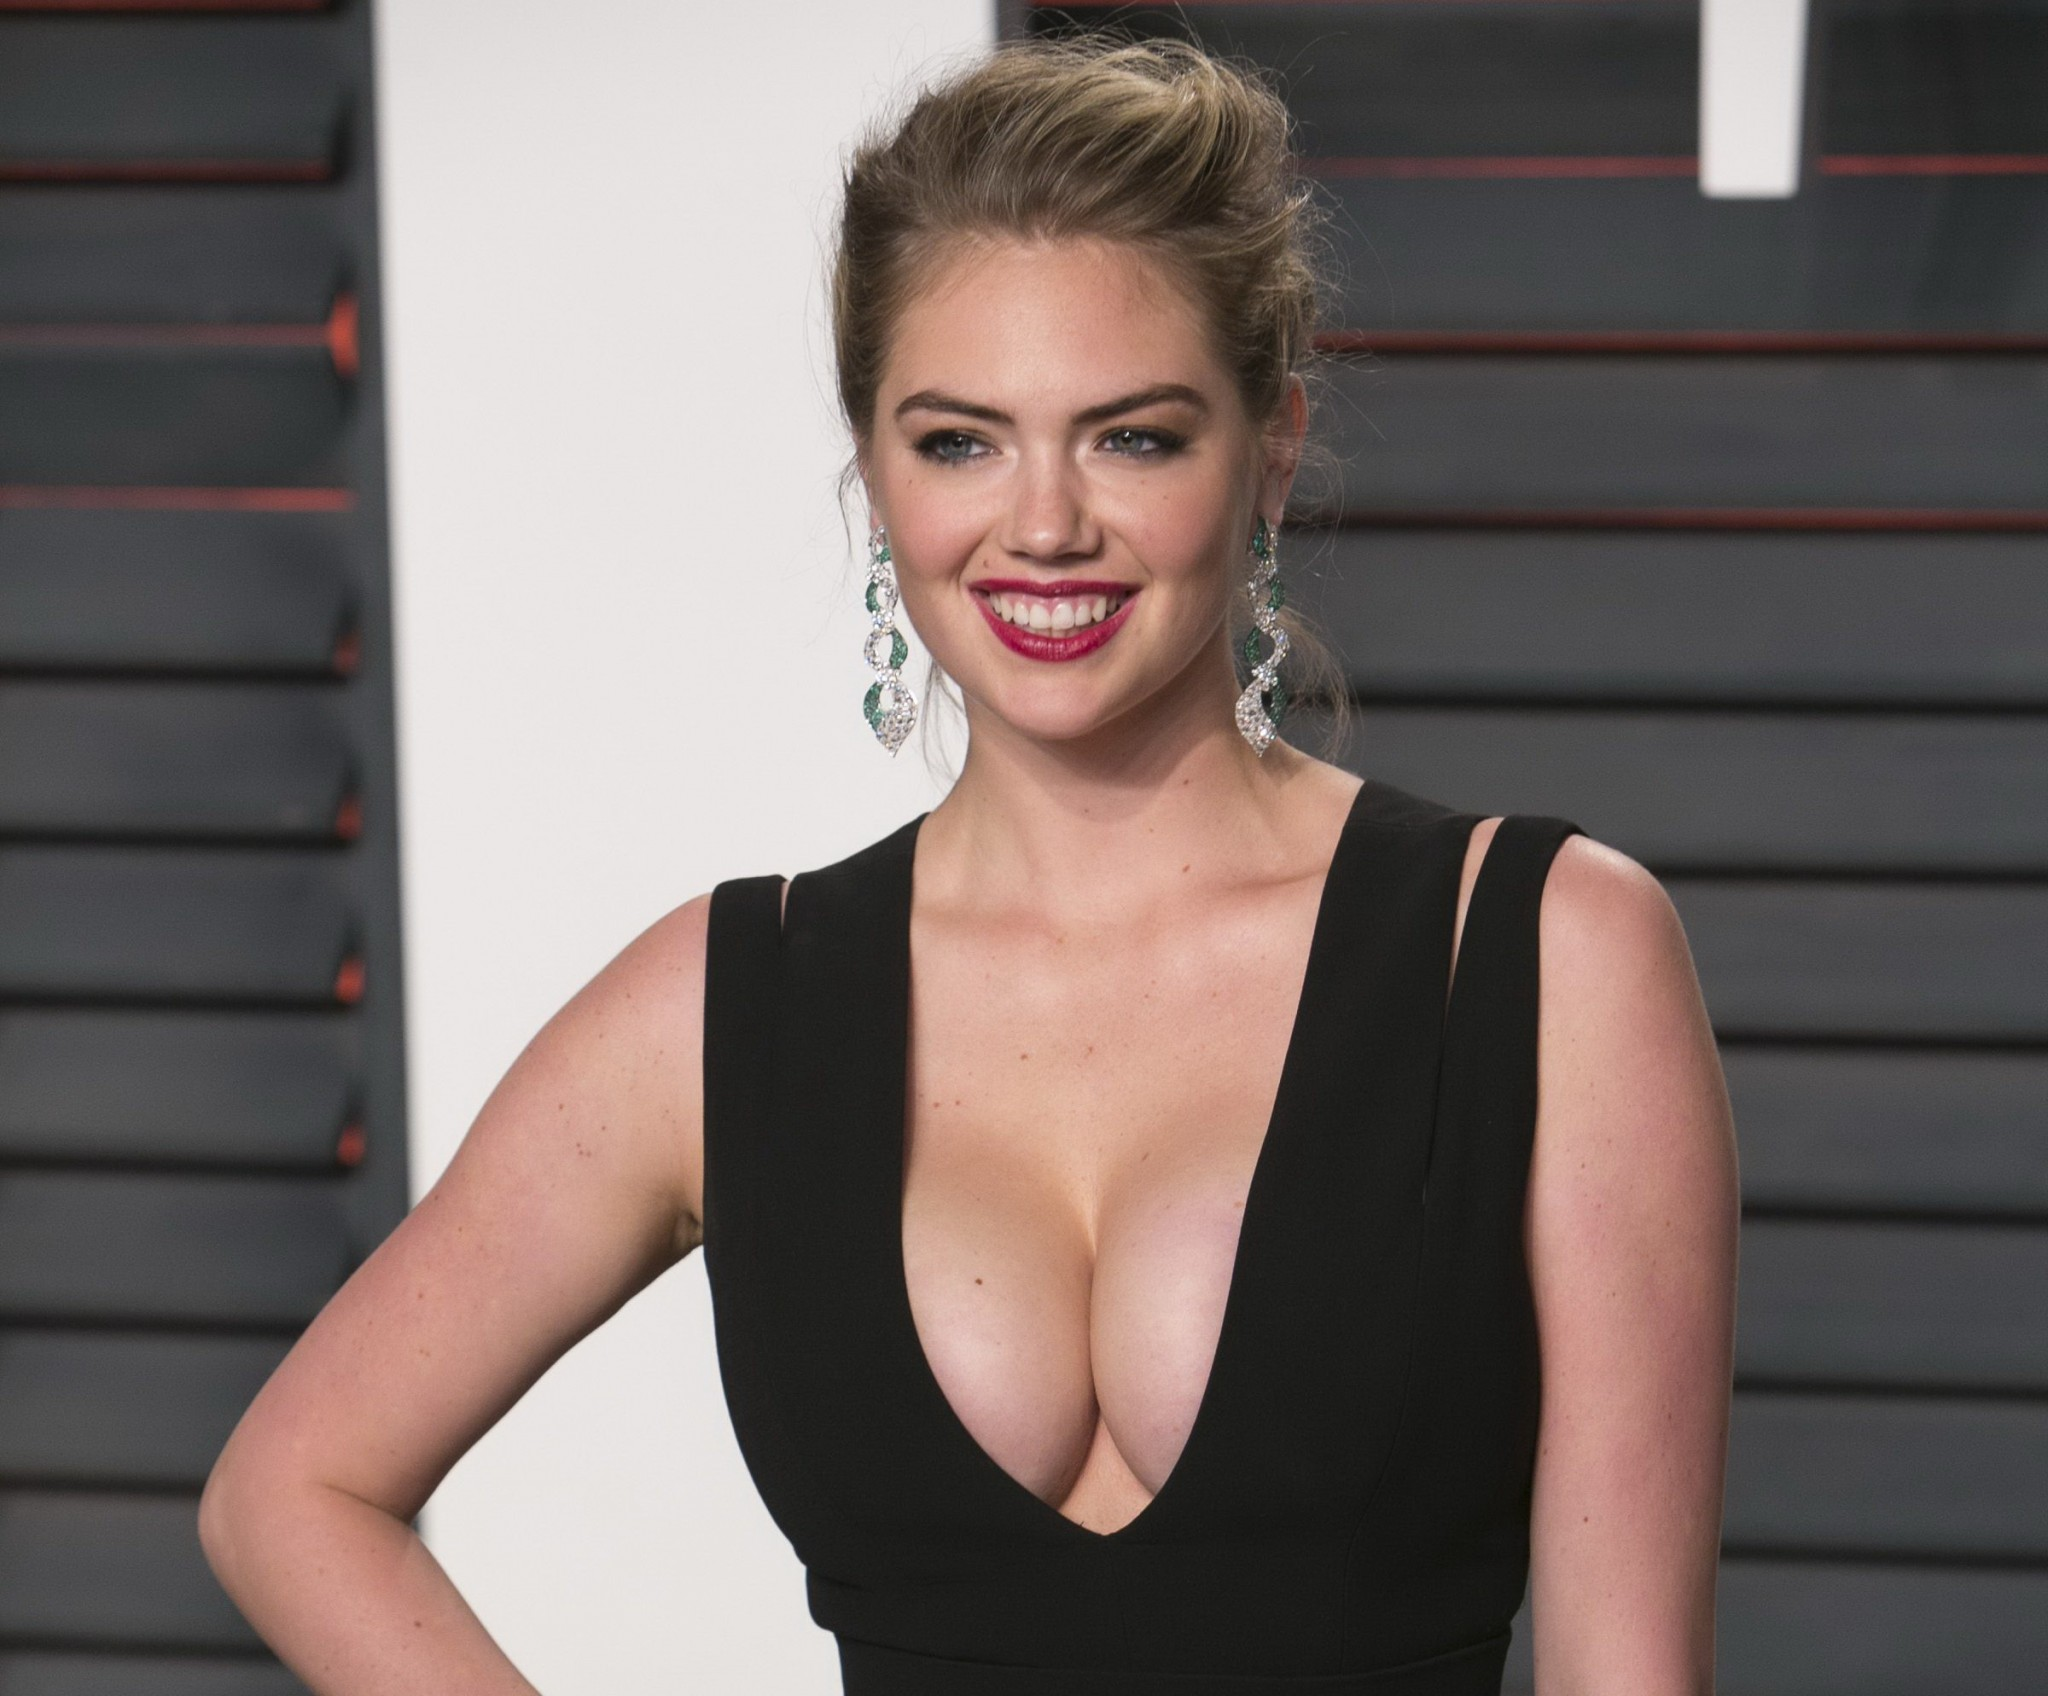 kate-upton-cleavage-at-2016-vanity-fair-oscar-party-13